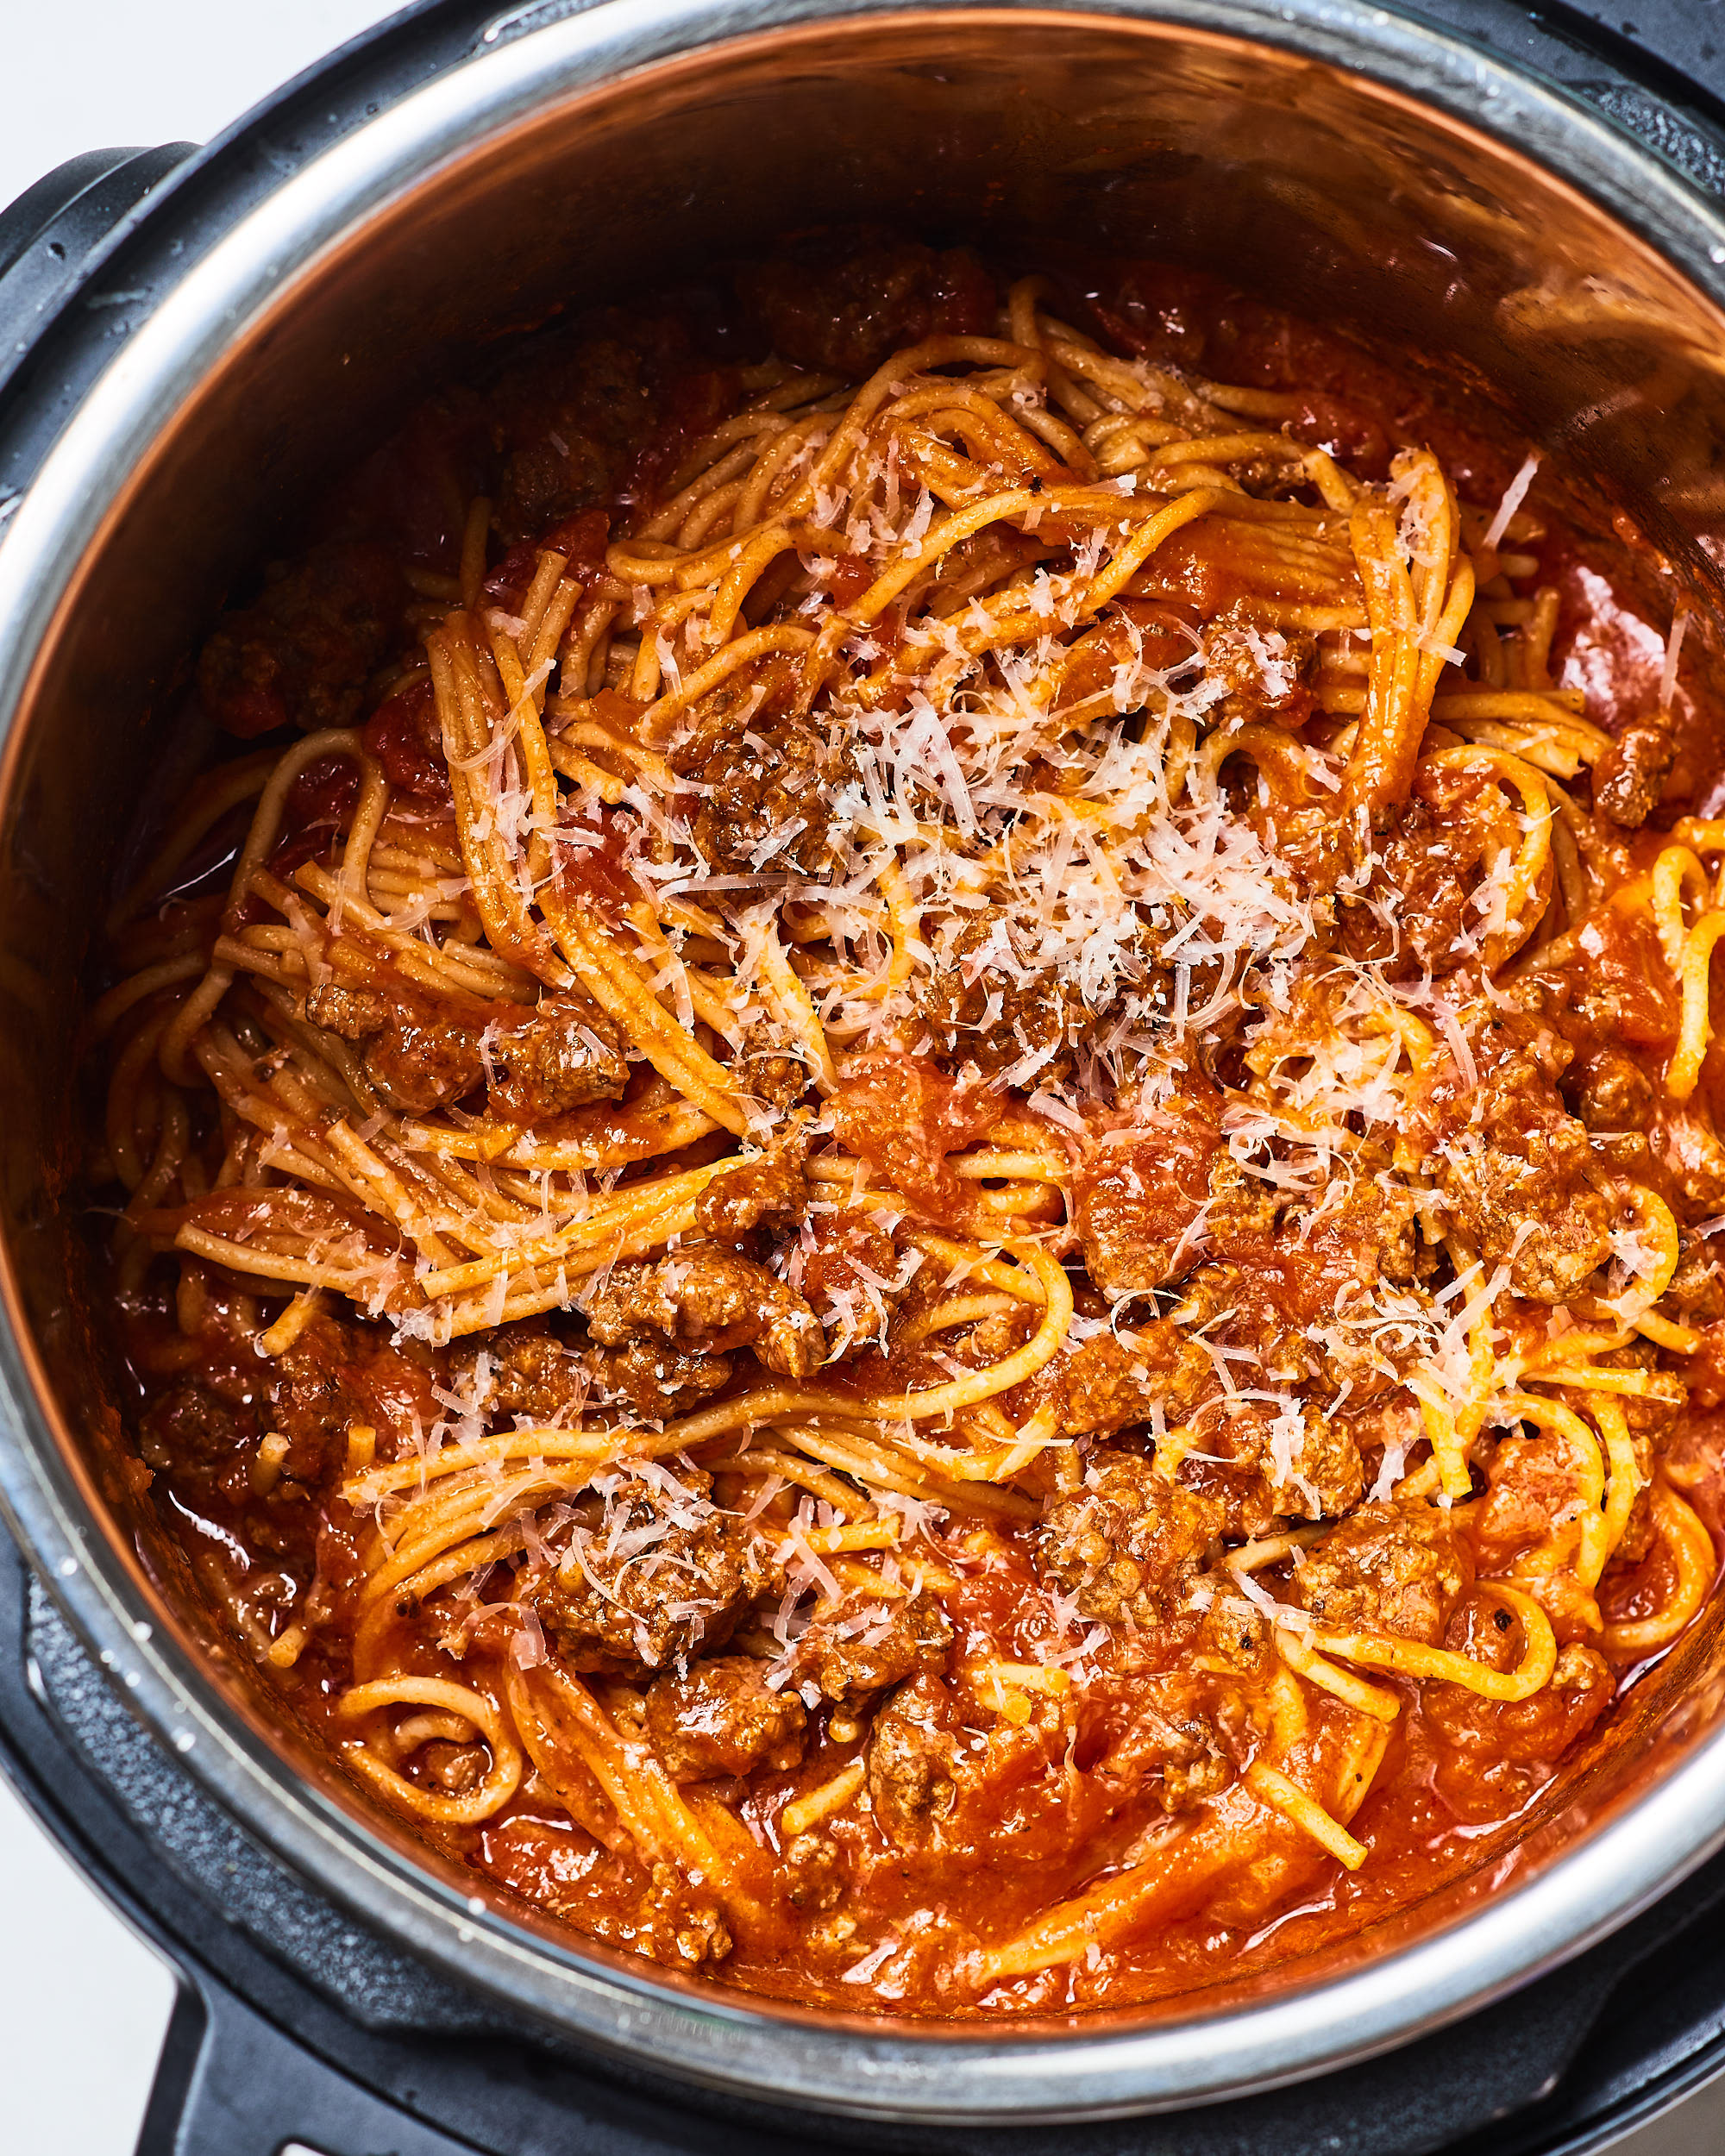 How To Make Instant Pot Spaghetti: gallery image 9